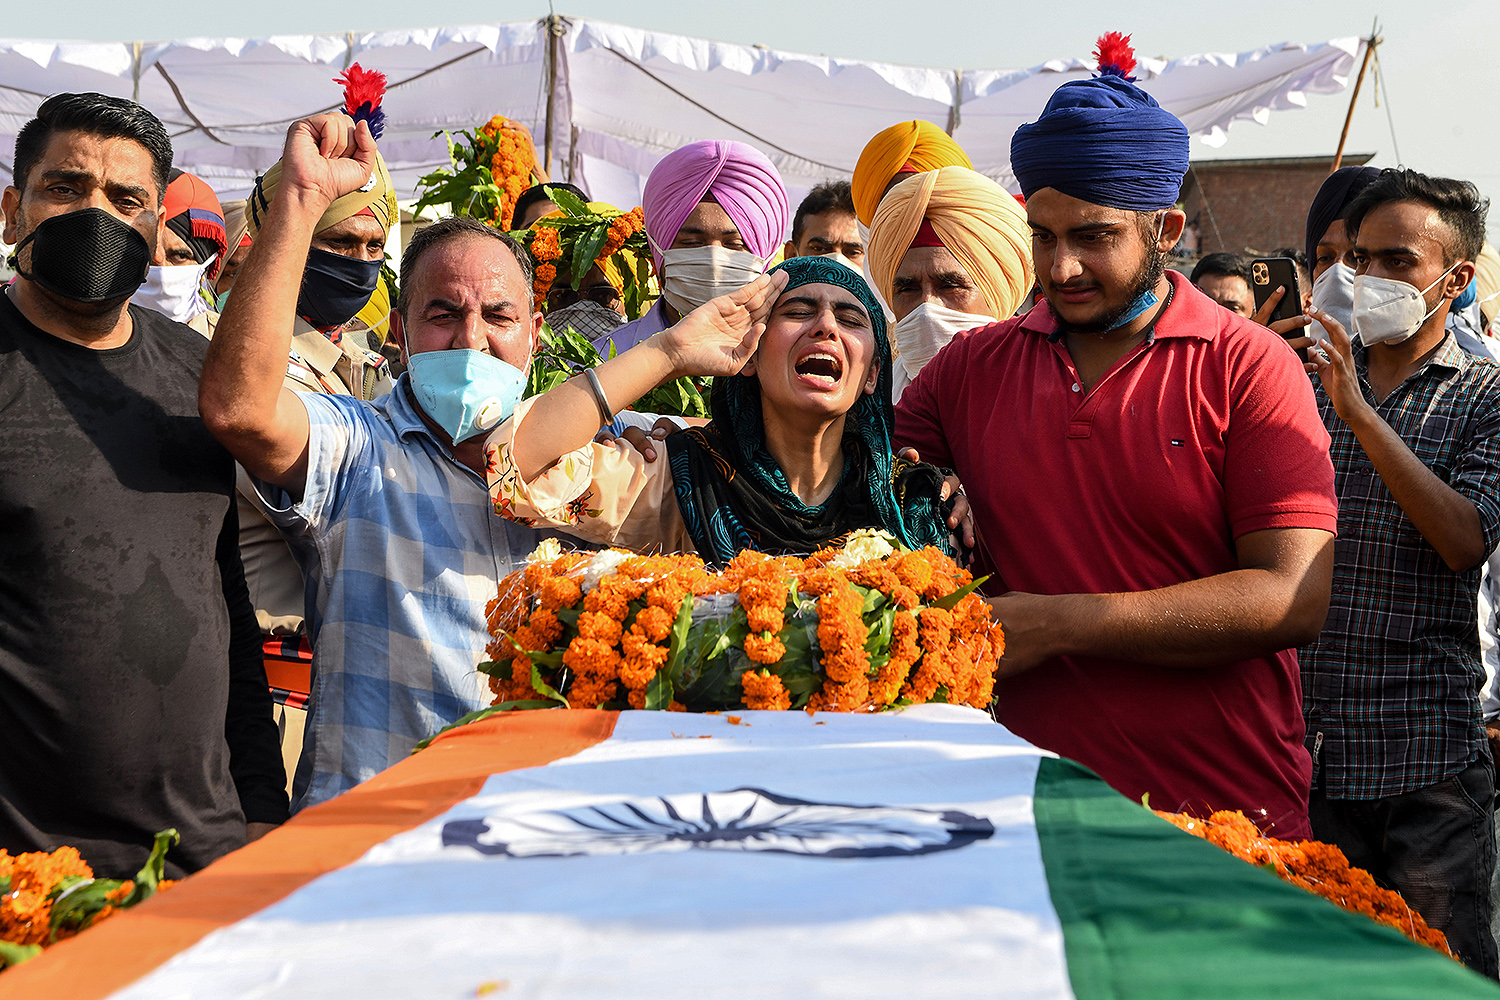 Sandeep Kaur (center) and her brother Prabhjot Singh (second from right) react after laying wreaths of flowers on the coffin of their father, Satnam Singh, a soldier who was killed in a recent clash with Chinese forces, during the cremation ceremony at Bhojraj village near Gurdaspur, India, on June 18. A bloody clash between troops on the disputed India-China border claimed at least 20 Indian soldiers' lives. NARINDER NANU/AFP via Getty Images